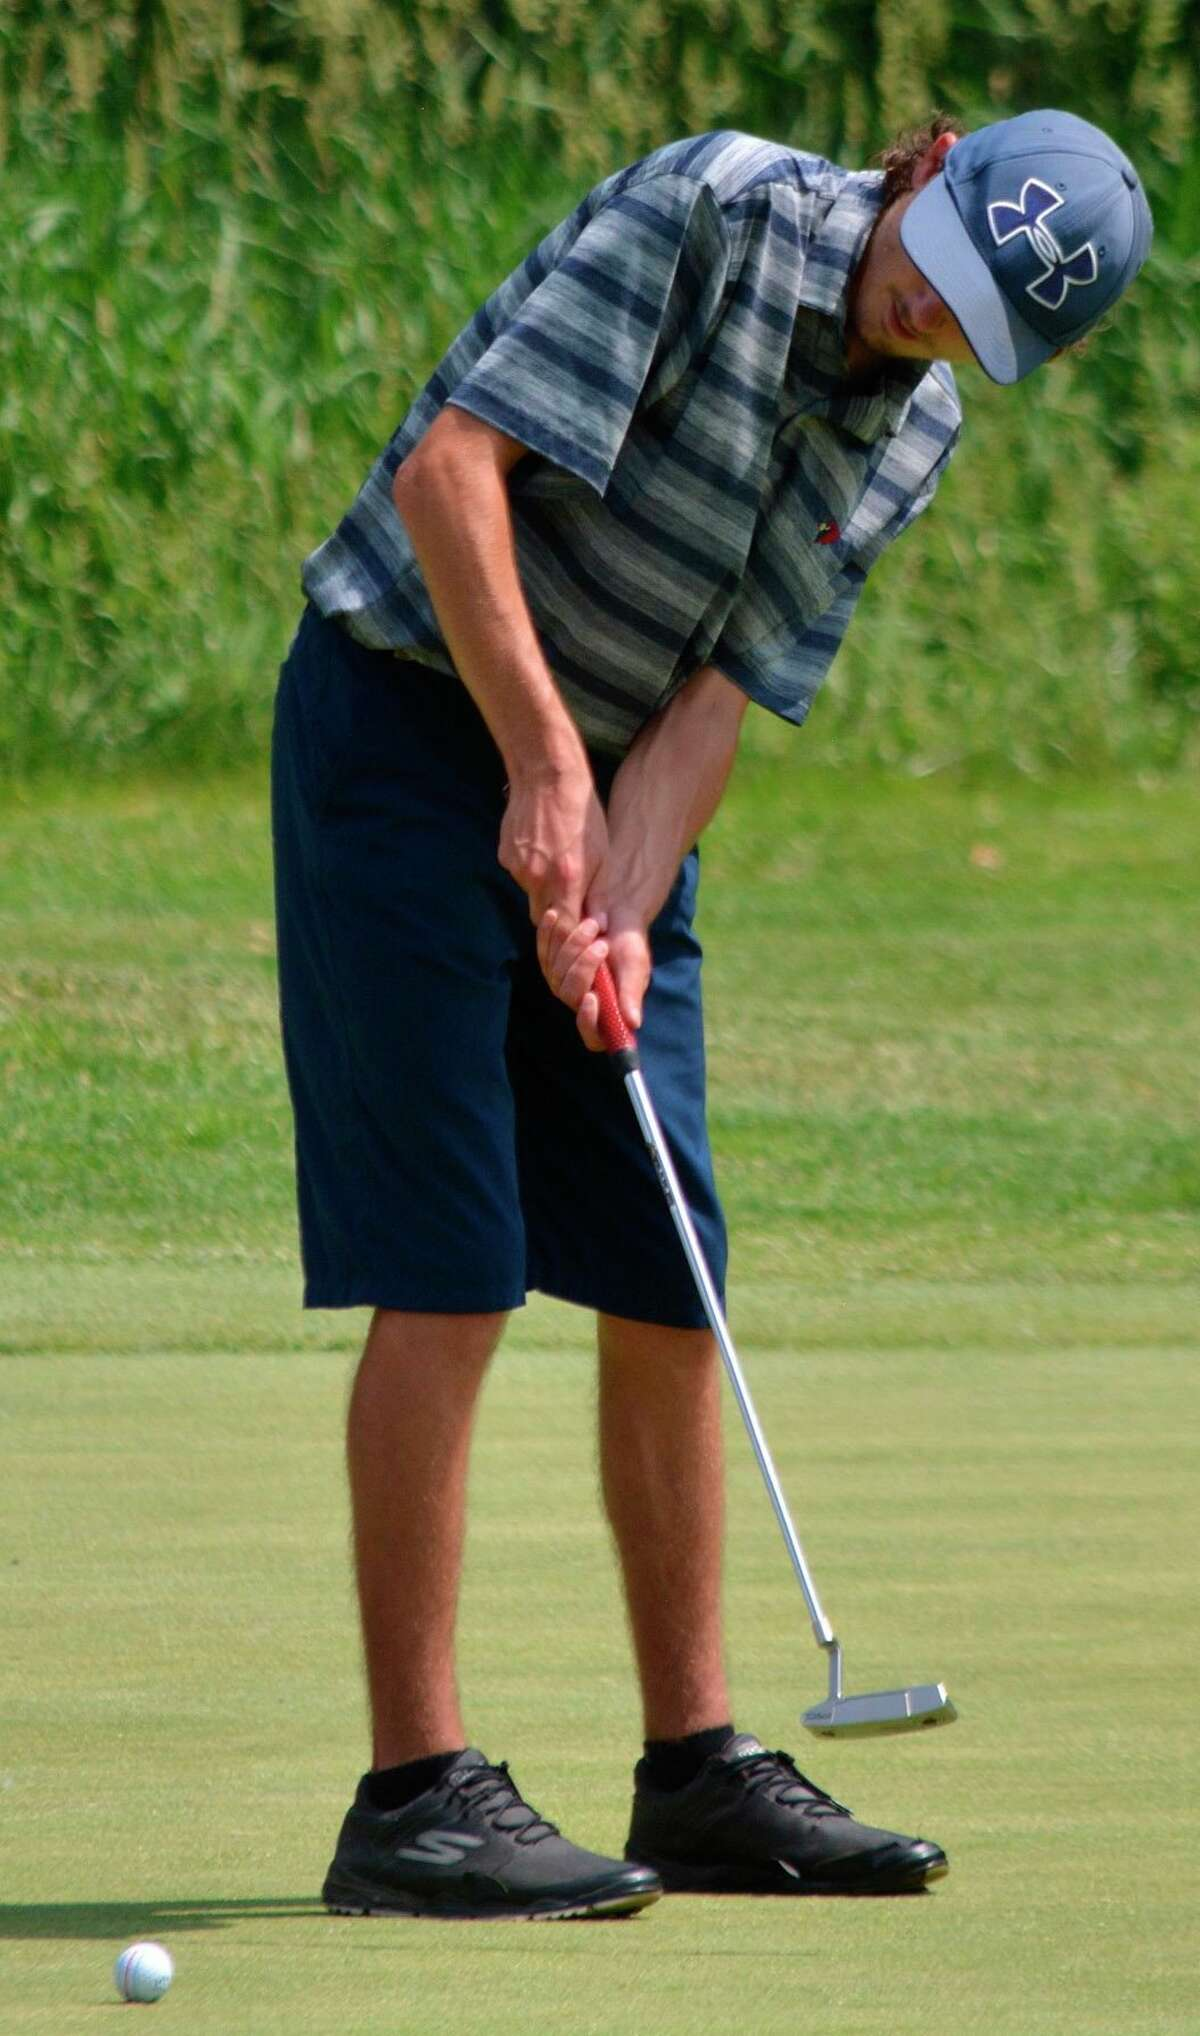 Big Rapids' Brett Lilienthal putts on the Meadows Golf Course on Friday at the Division 3 state finals. (Courtesy photo)